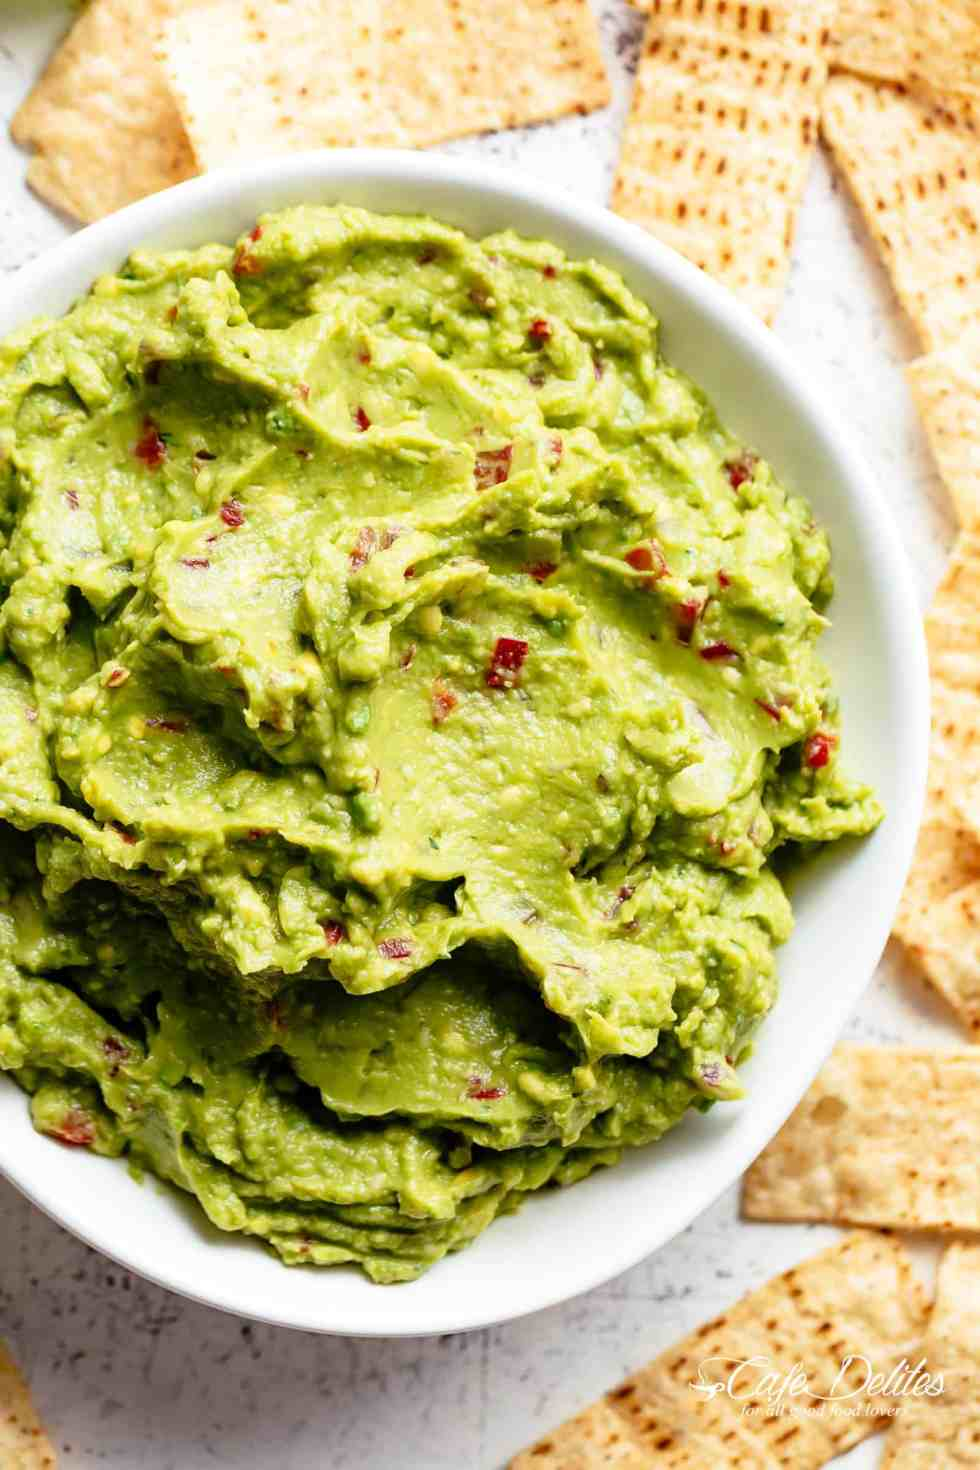 The best, creamy Guacamole is so easy to make and better than anything found in a jar! Homemade Guacamole takes minutes to make and is so incredibly delicious! Perfect for a party as an appetizer OR just a simple snack! Use as a topping for your favourite fajitas, tacos and even carnitas! | cafedelites.com